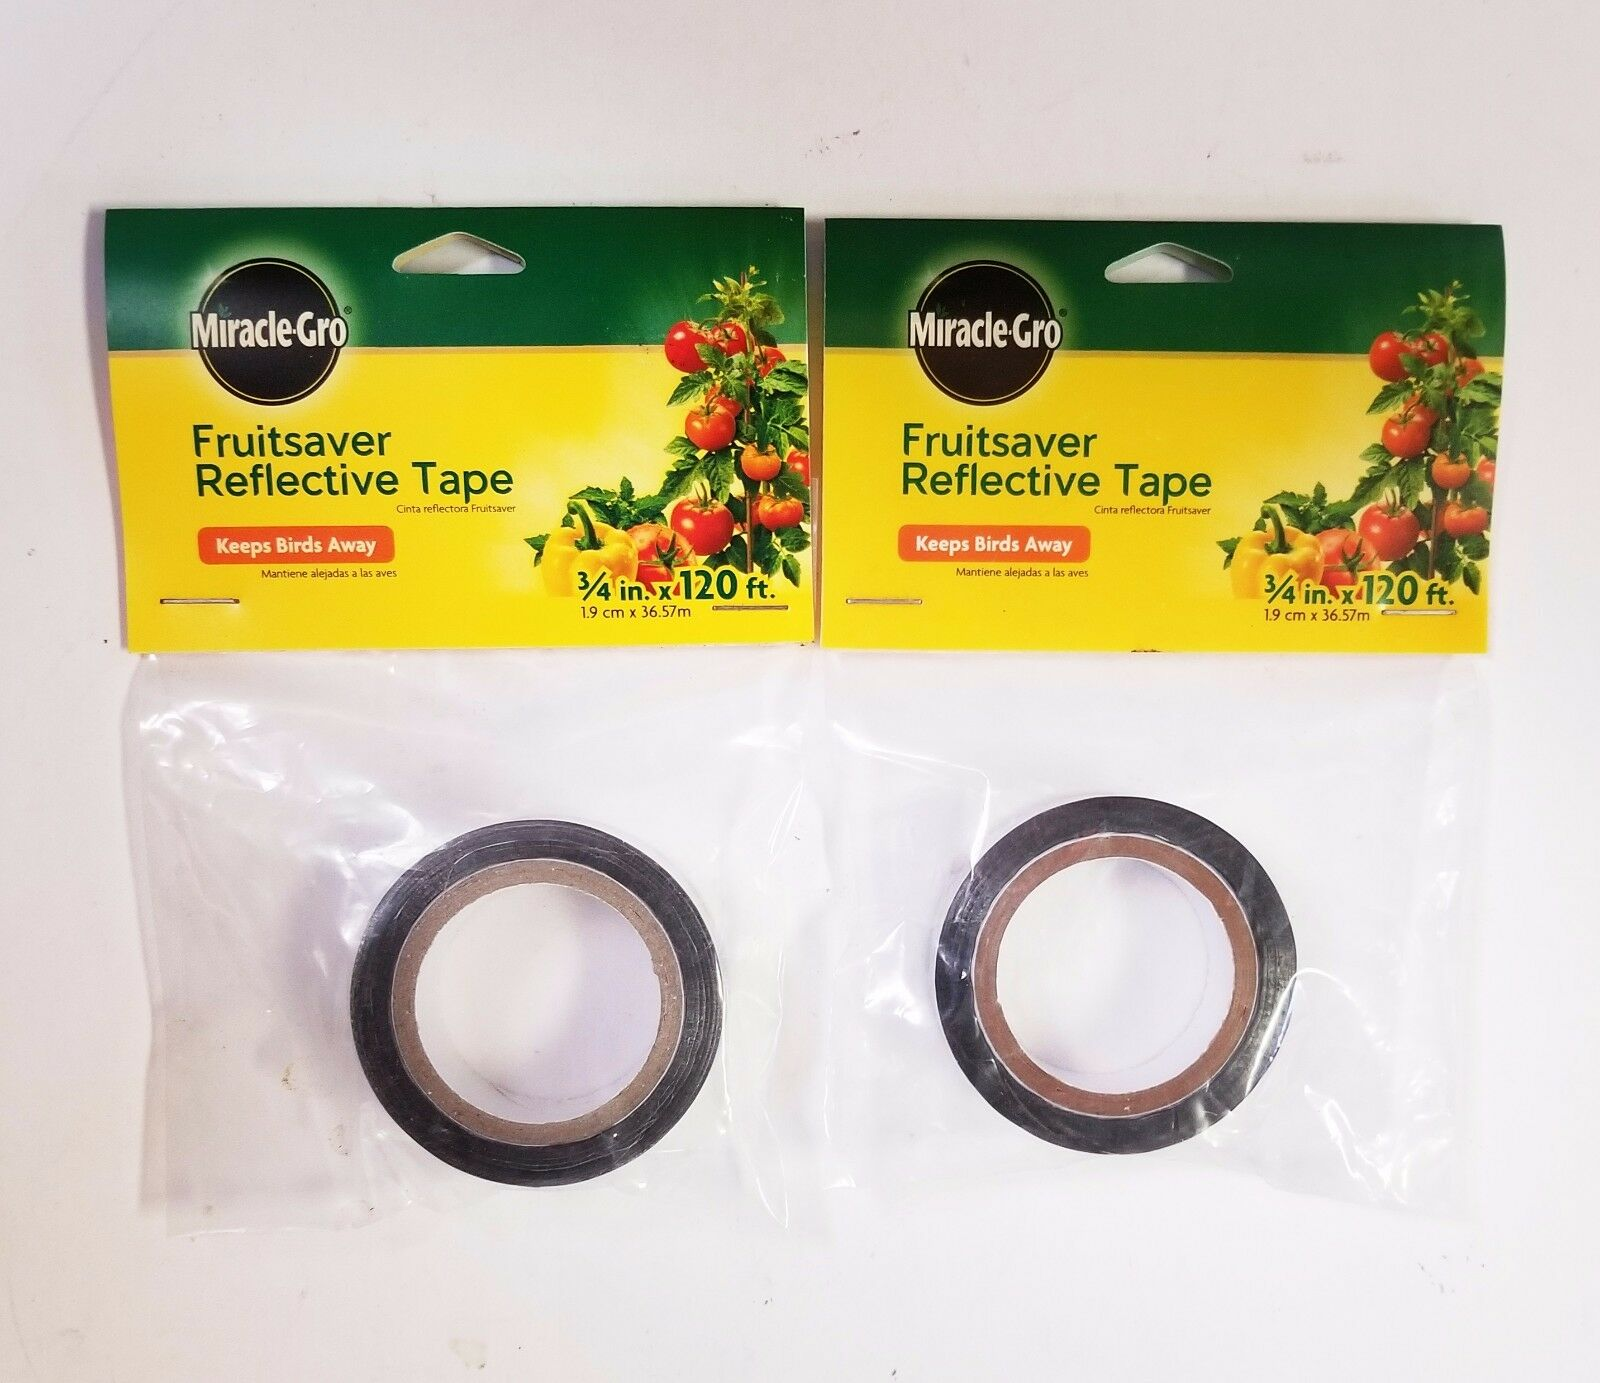 """Miracle Gro Fruit saver Reflective Tape *2 PACK* 3/4"""" x 120'"""